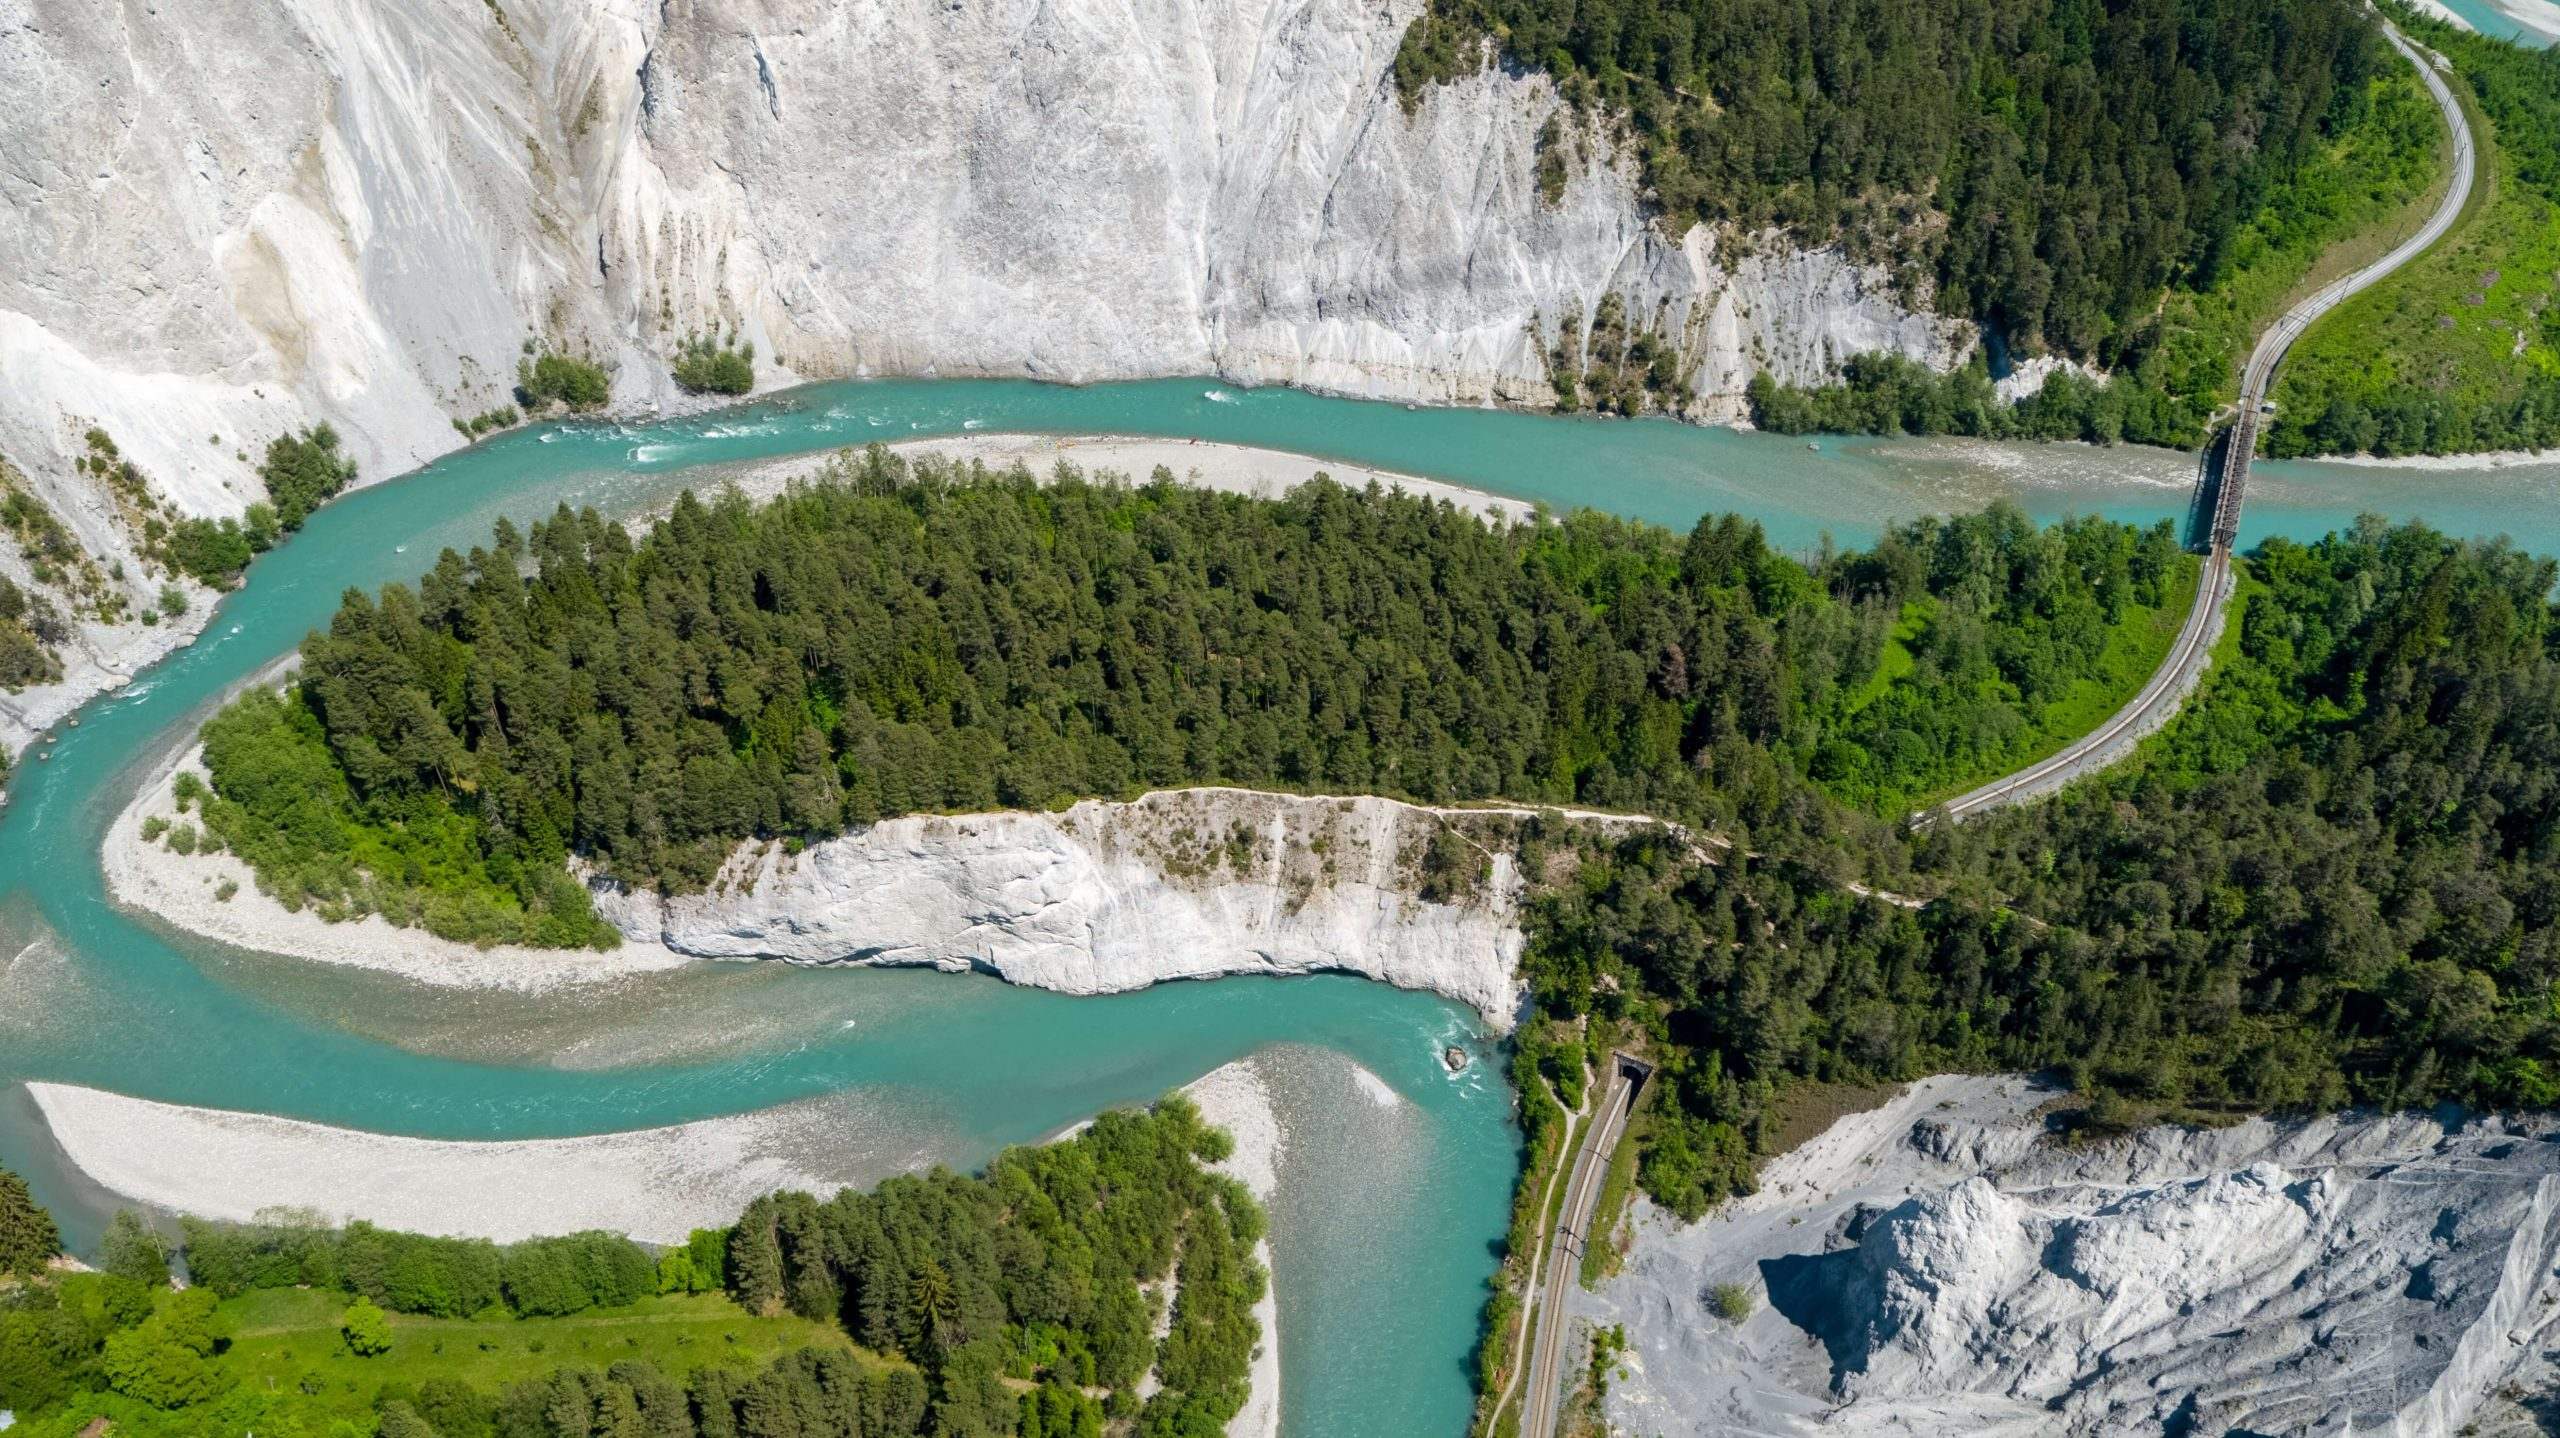 Exploring Switzerland: 8 Picturesque Swiss Rivers